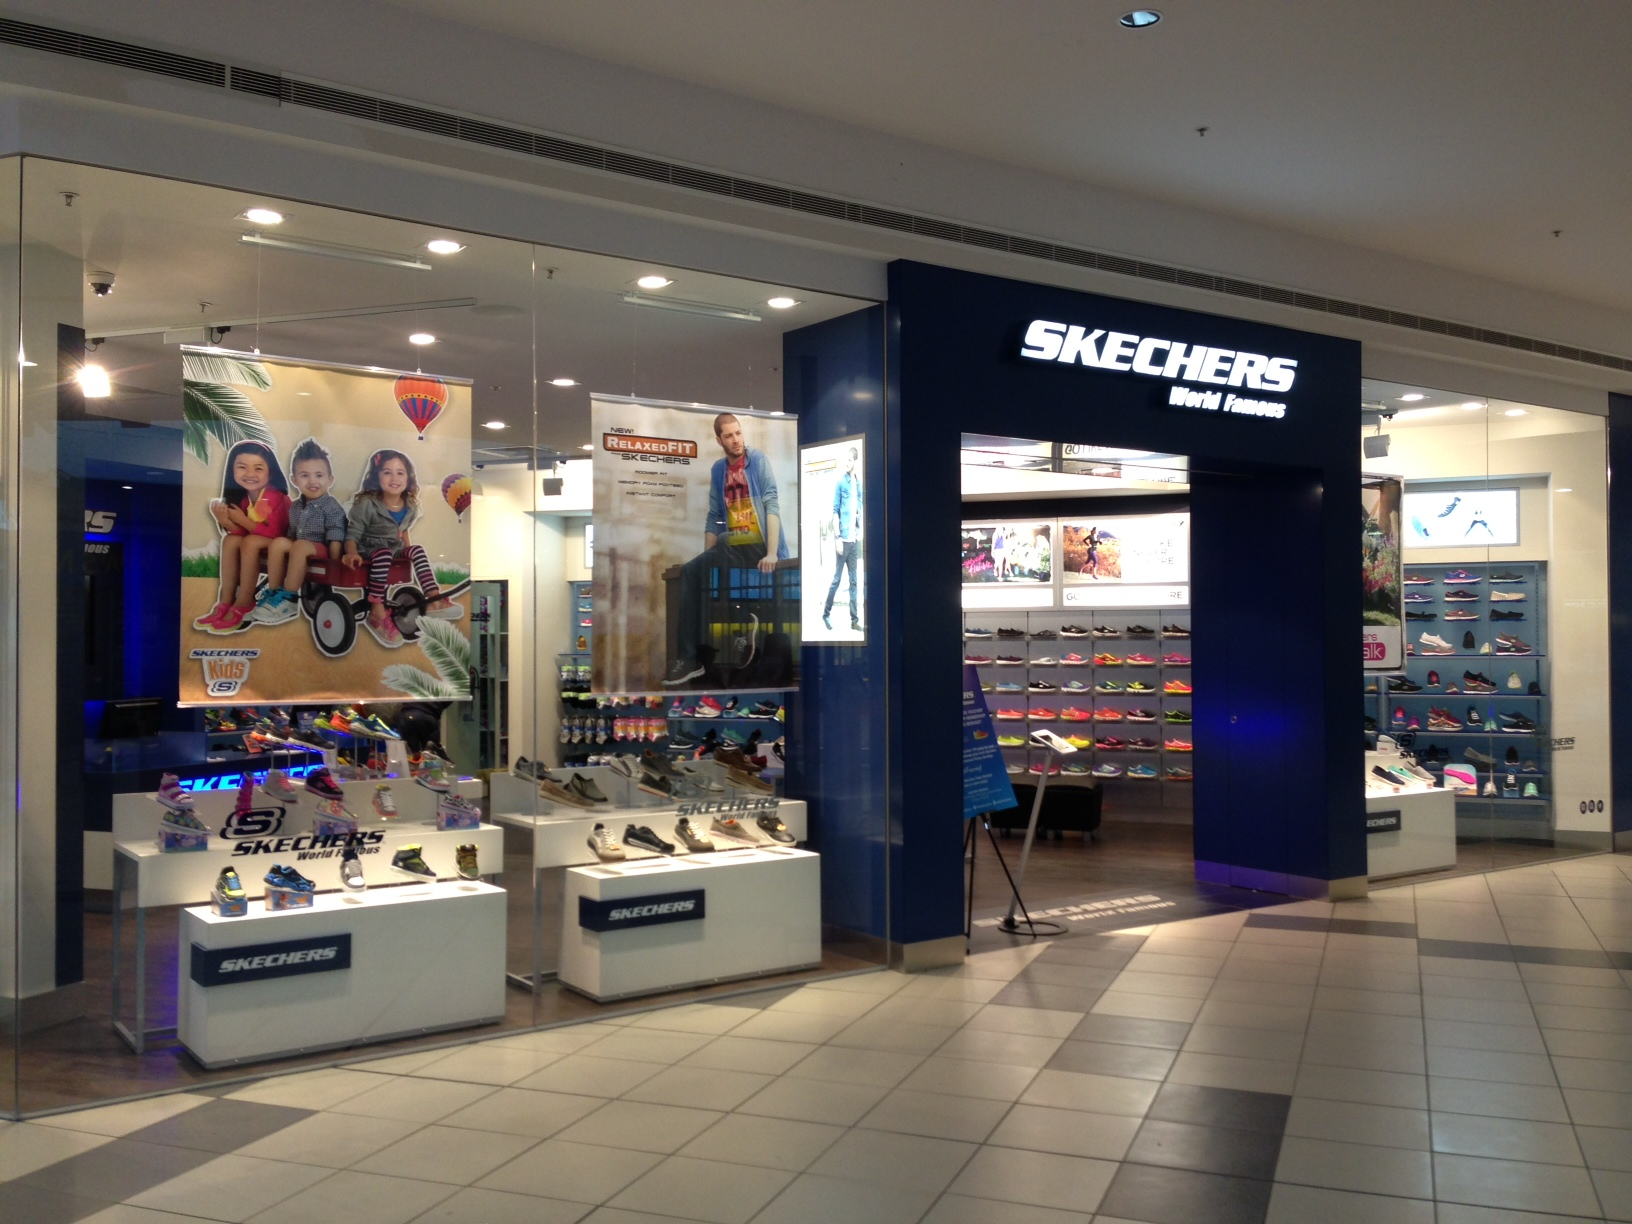 skechers nz stores